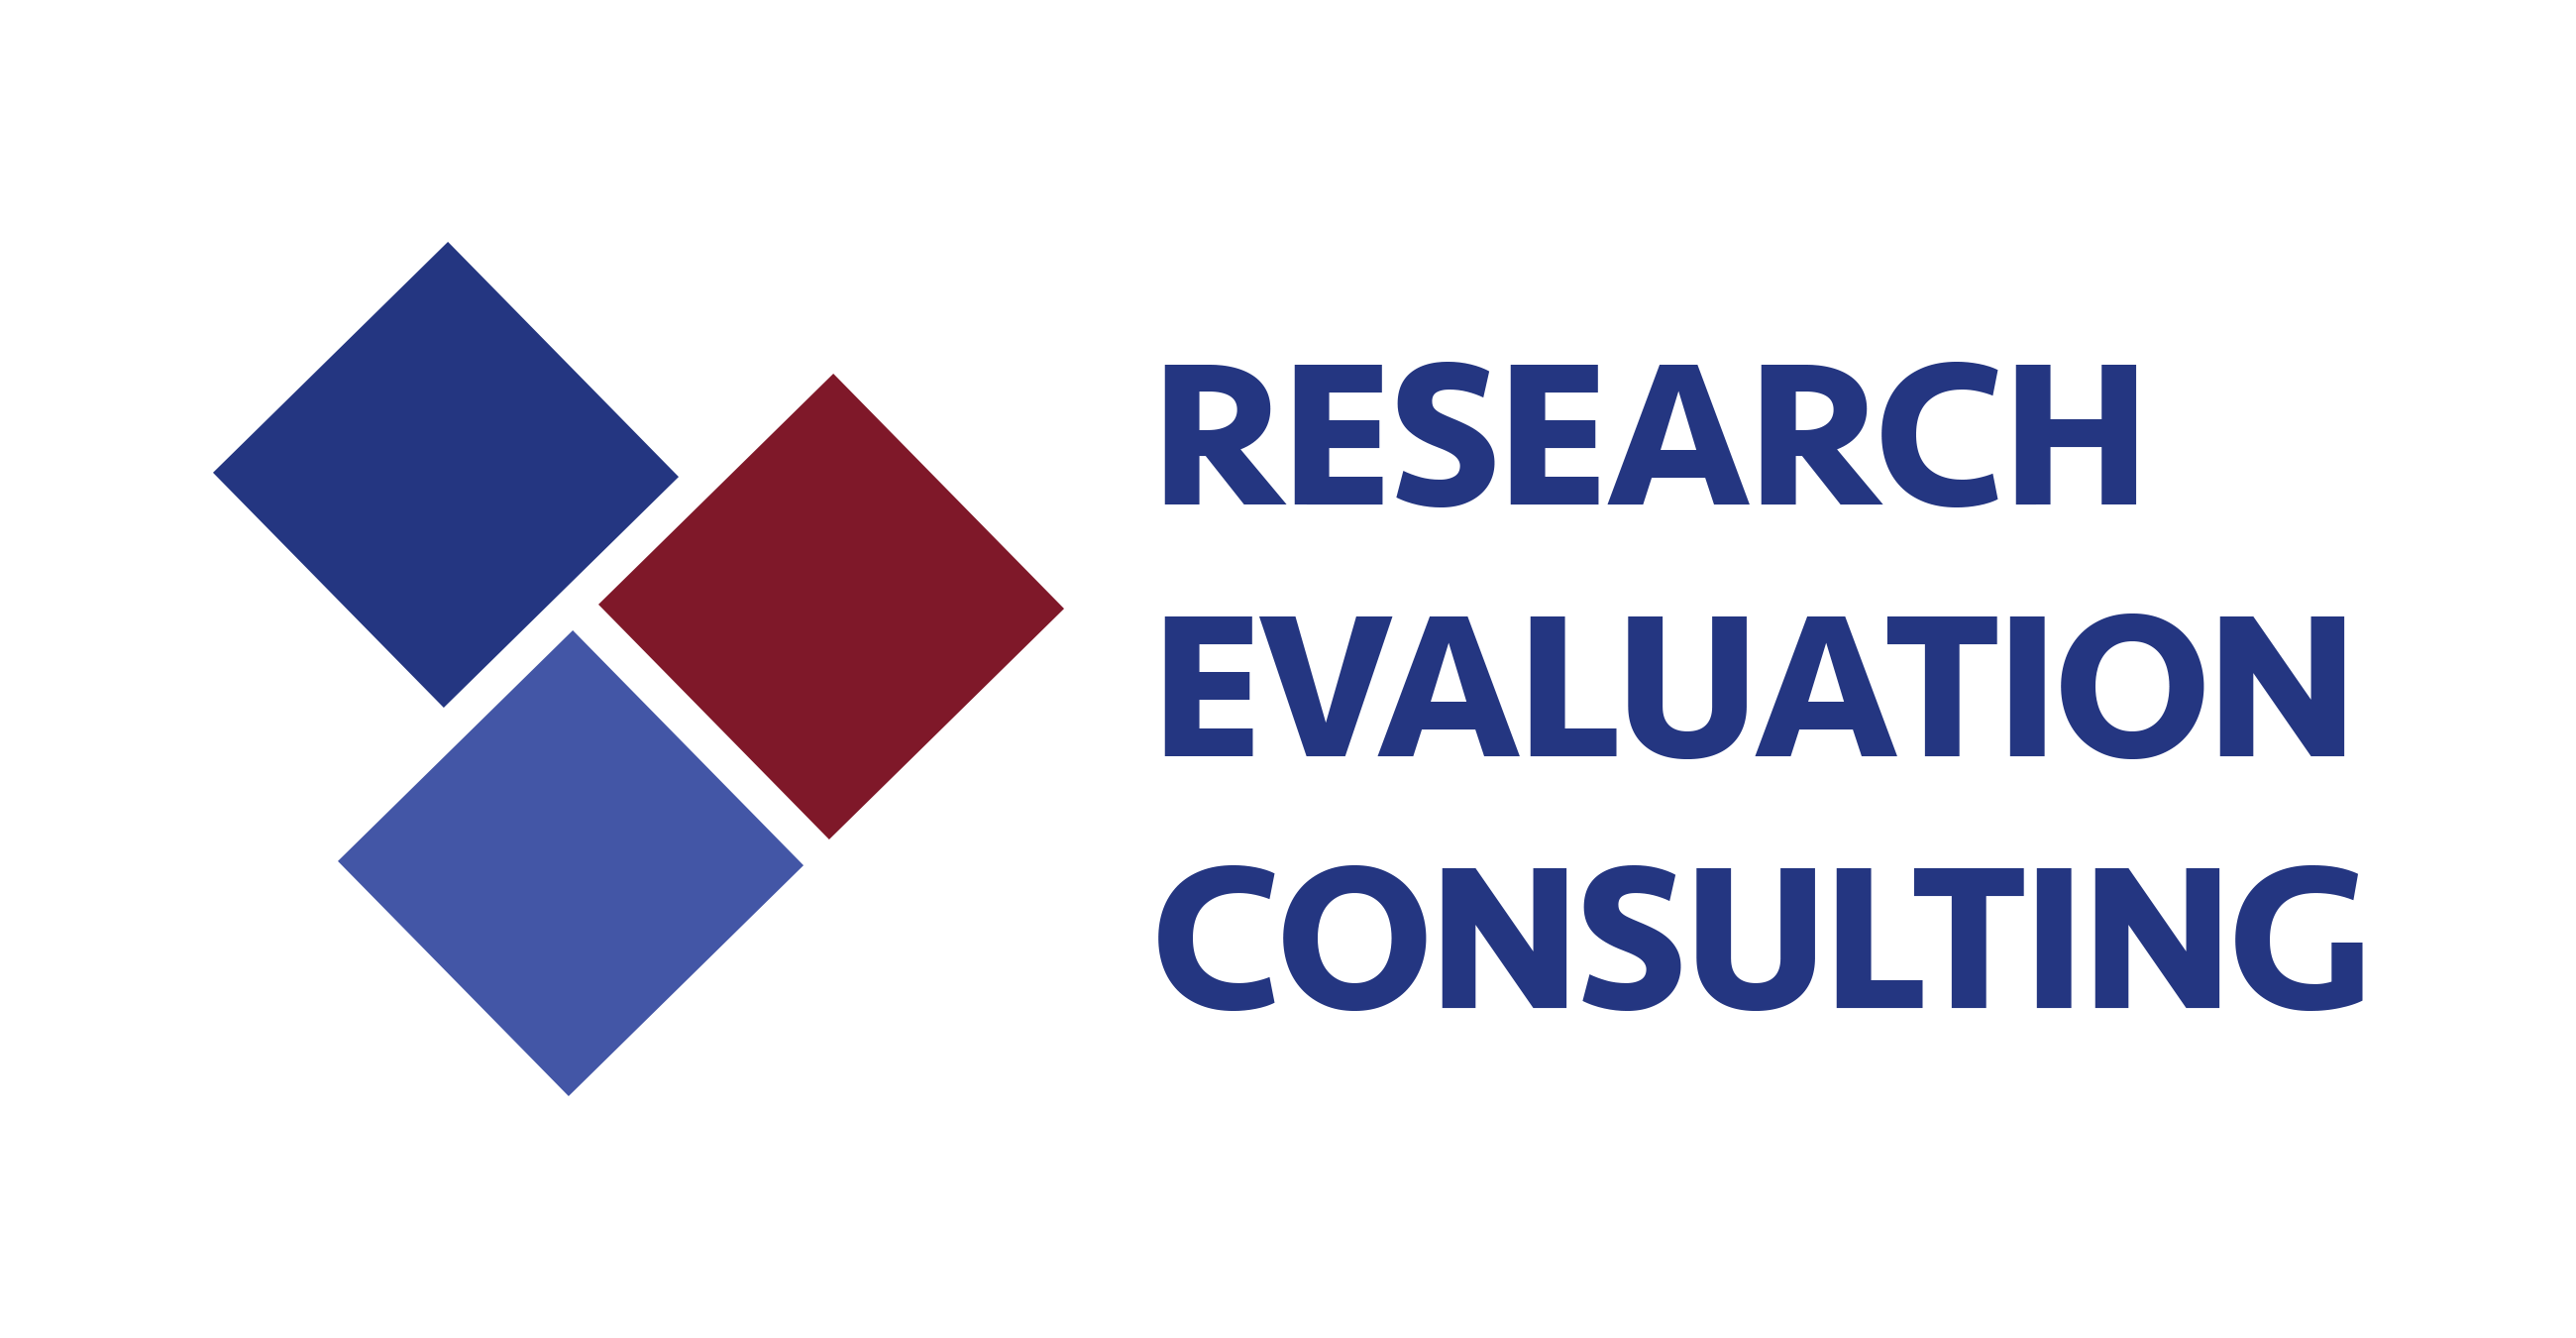 Evaluation clipart research evaluation. Consulting article credibility checklist